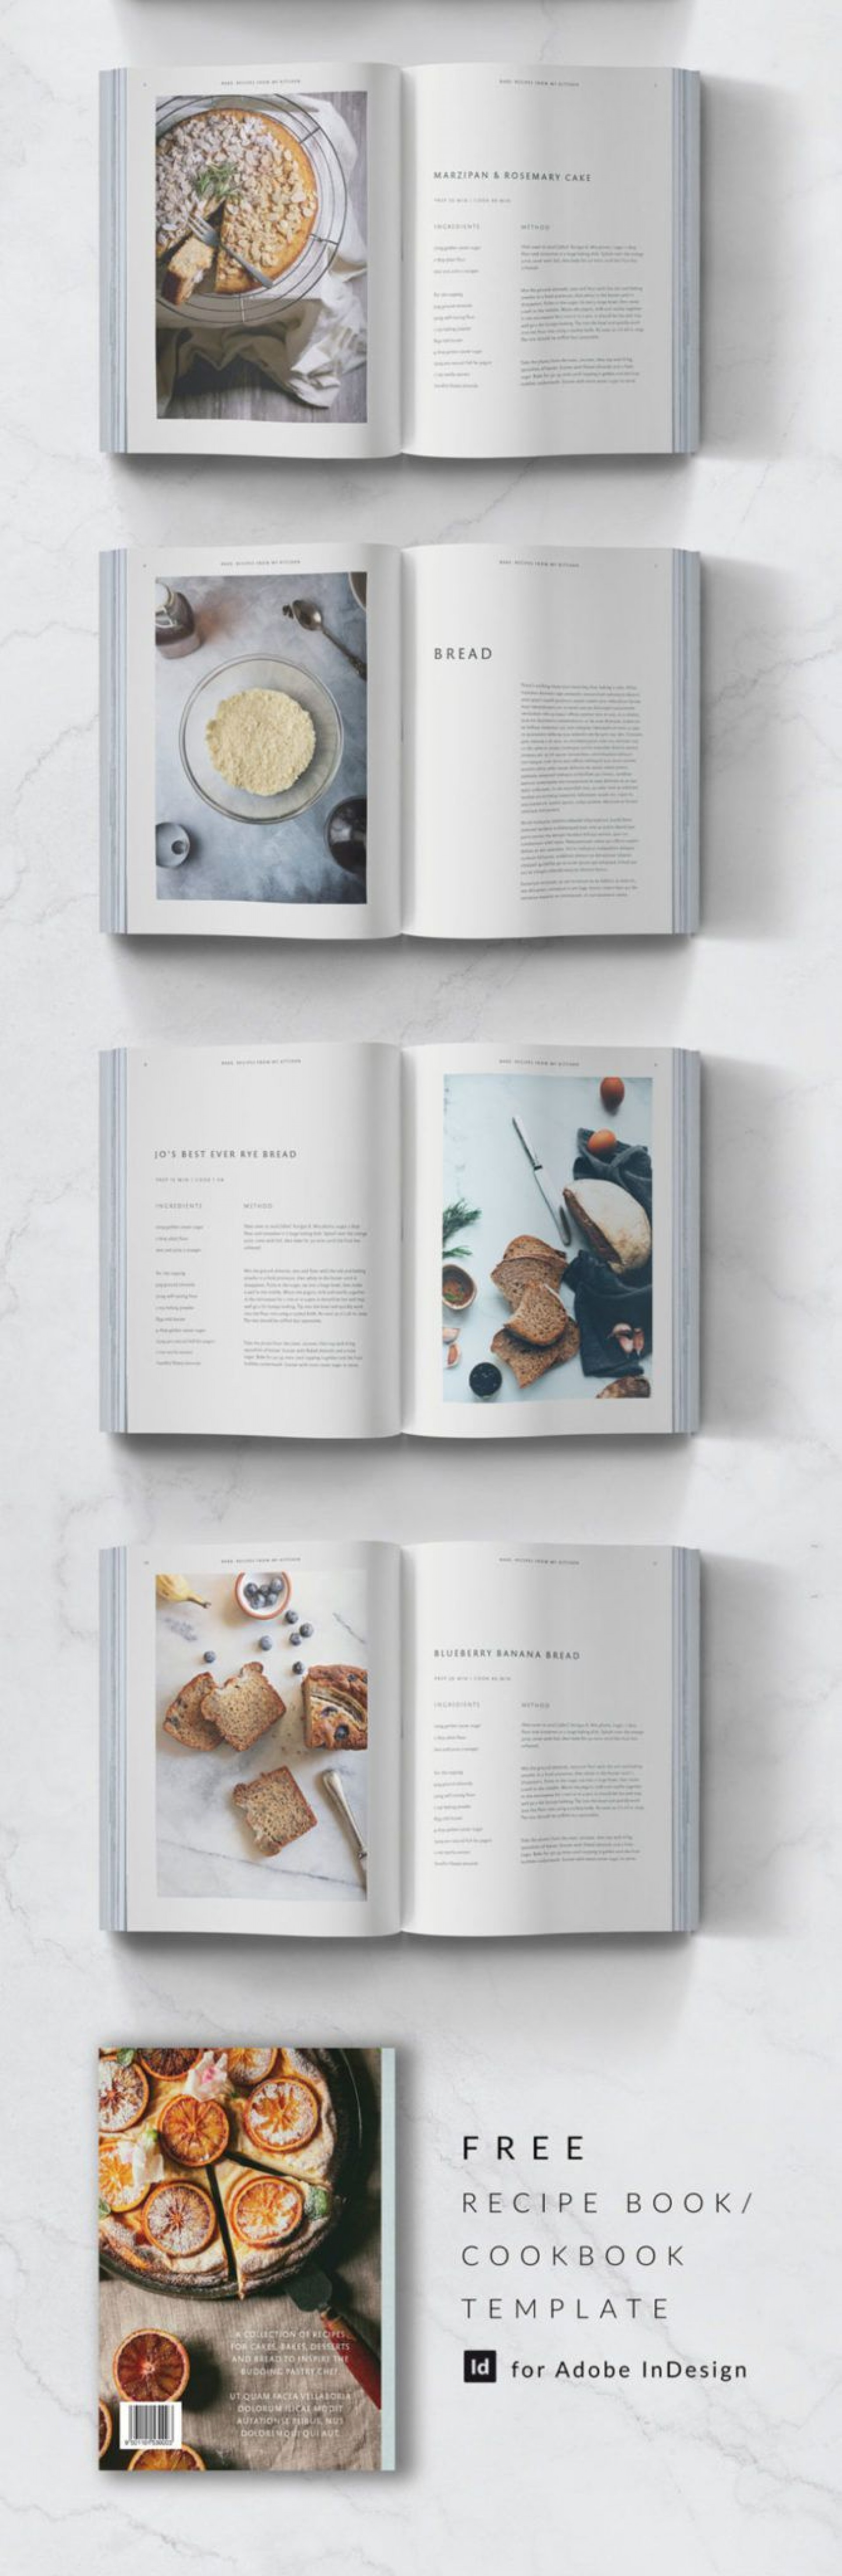 010 Awesome Free Recipe Book Template Example  Editable Cookbook For Microsoft Word Indesign1920